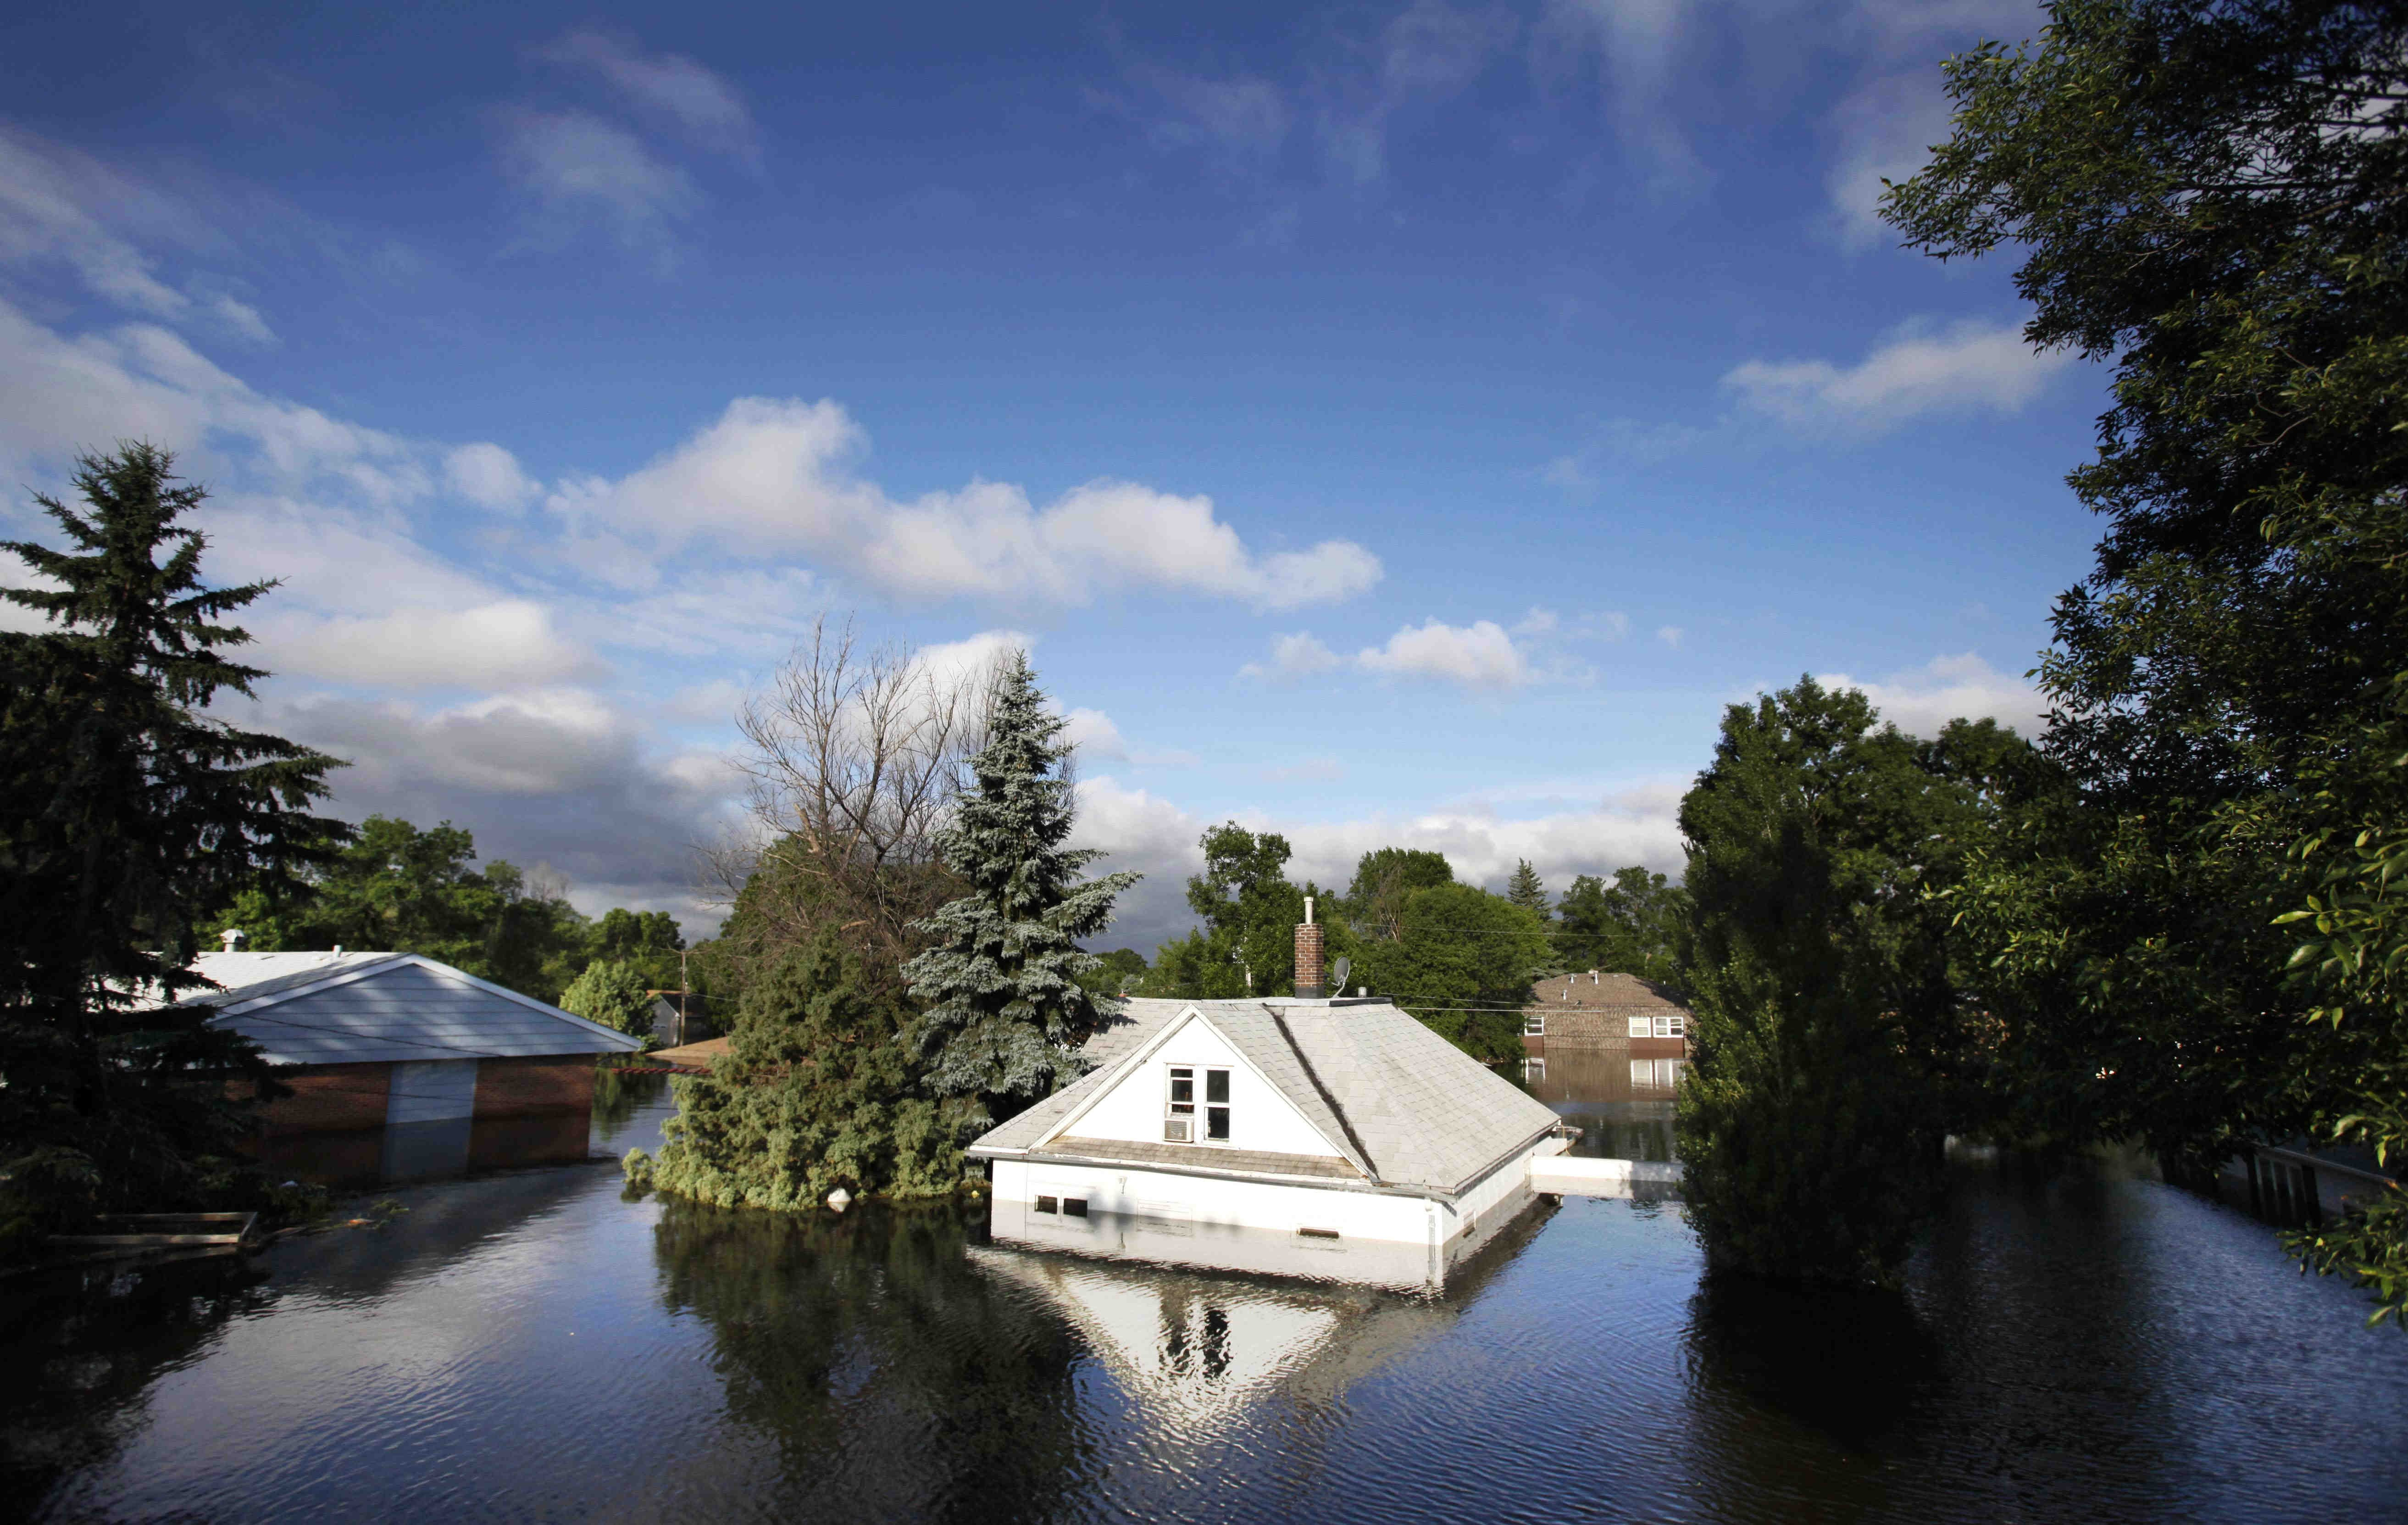 Floodwaters from the Souris River surround homes near Minot State University in Minot, N.D. in this June 27, 2011 file photo.